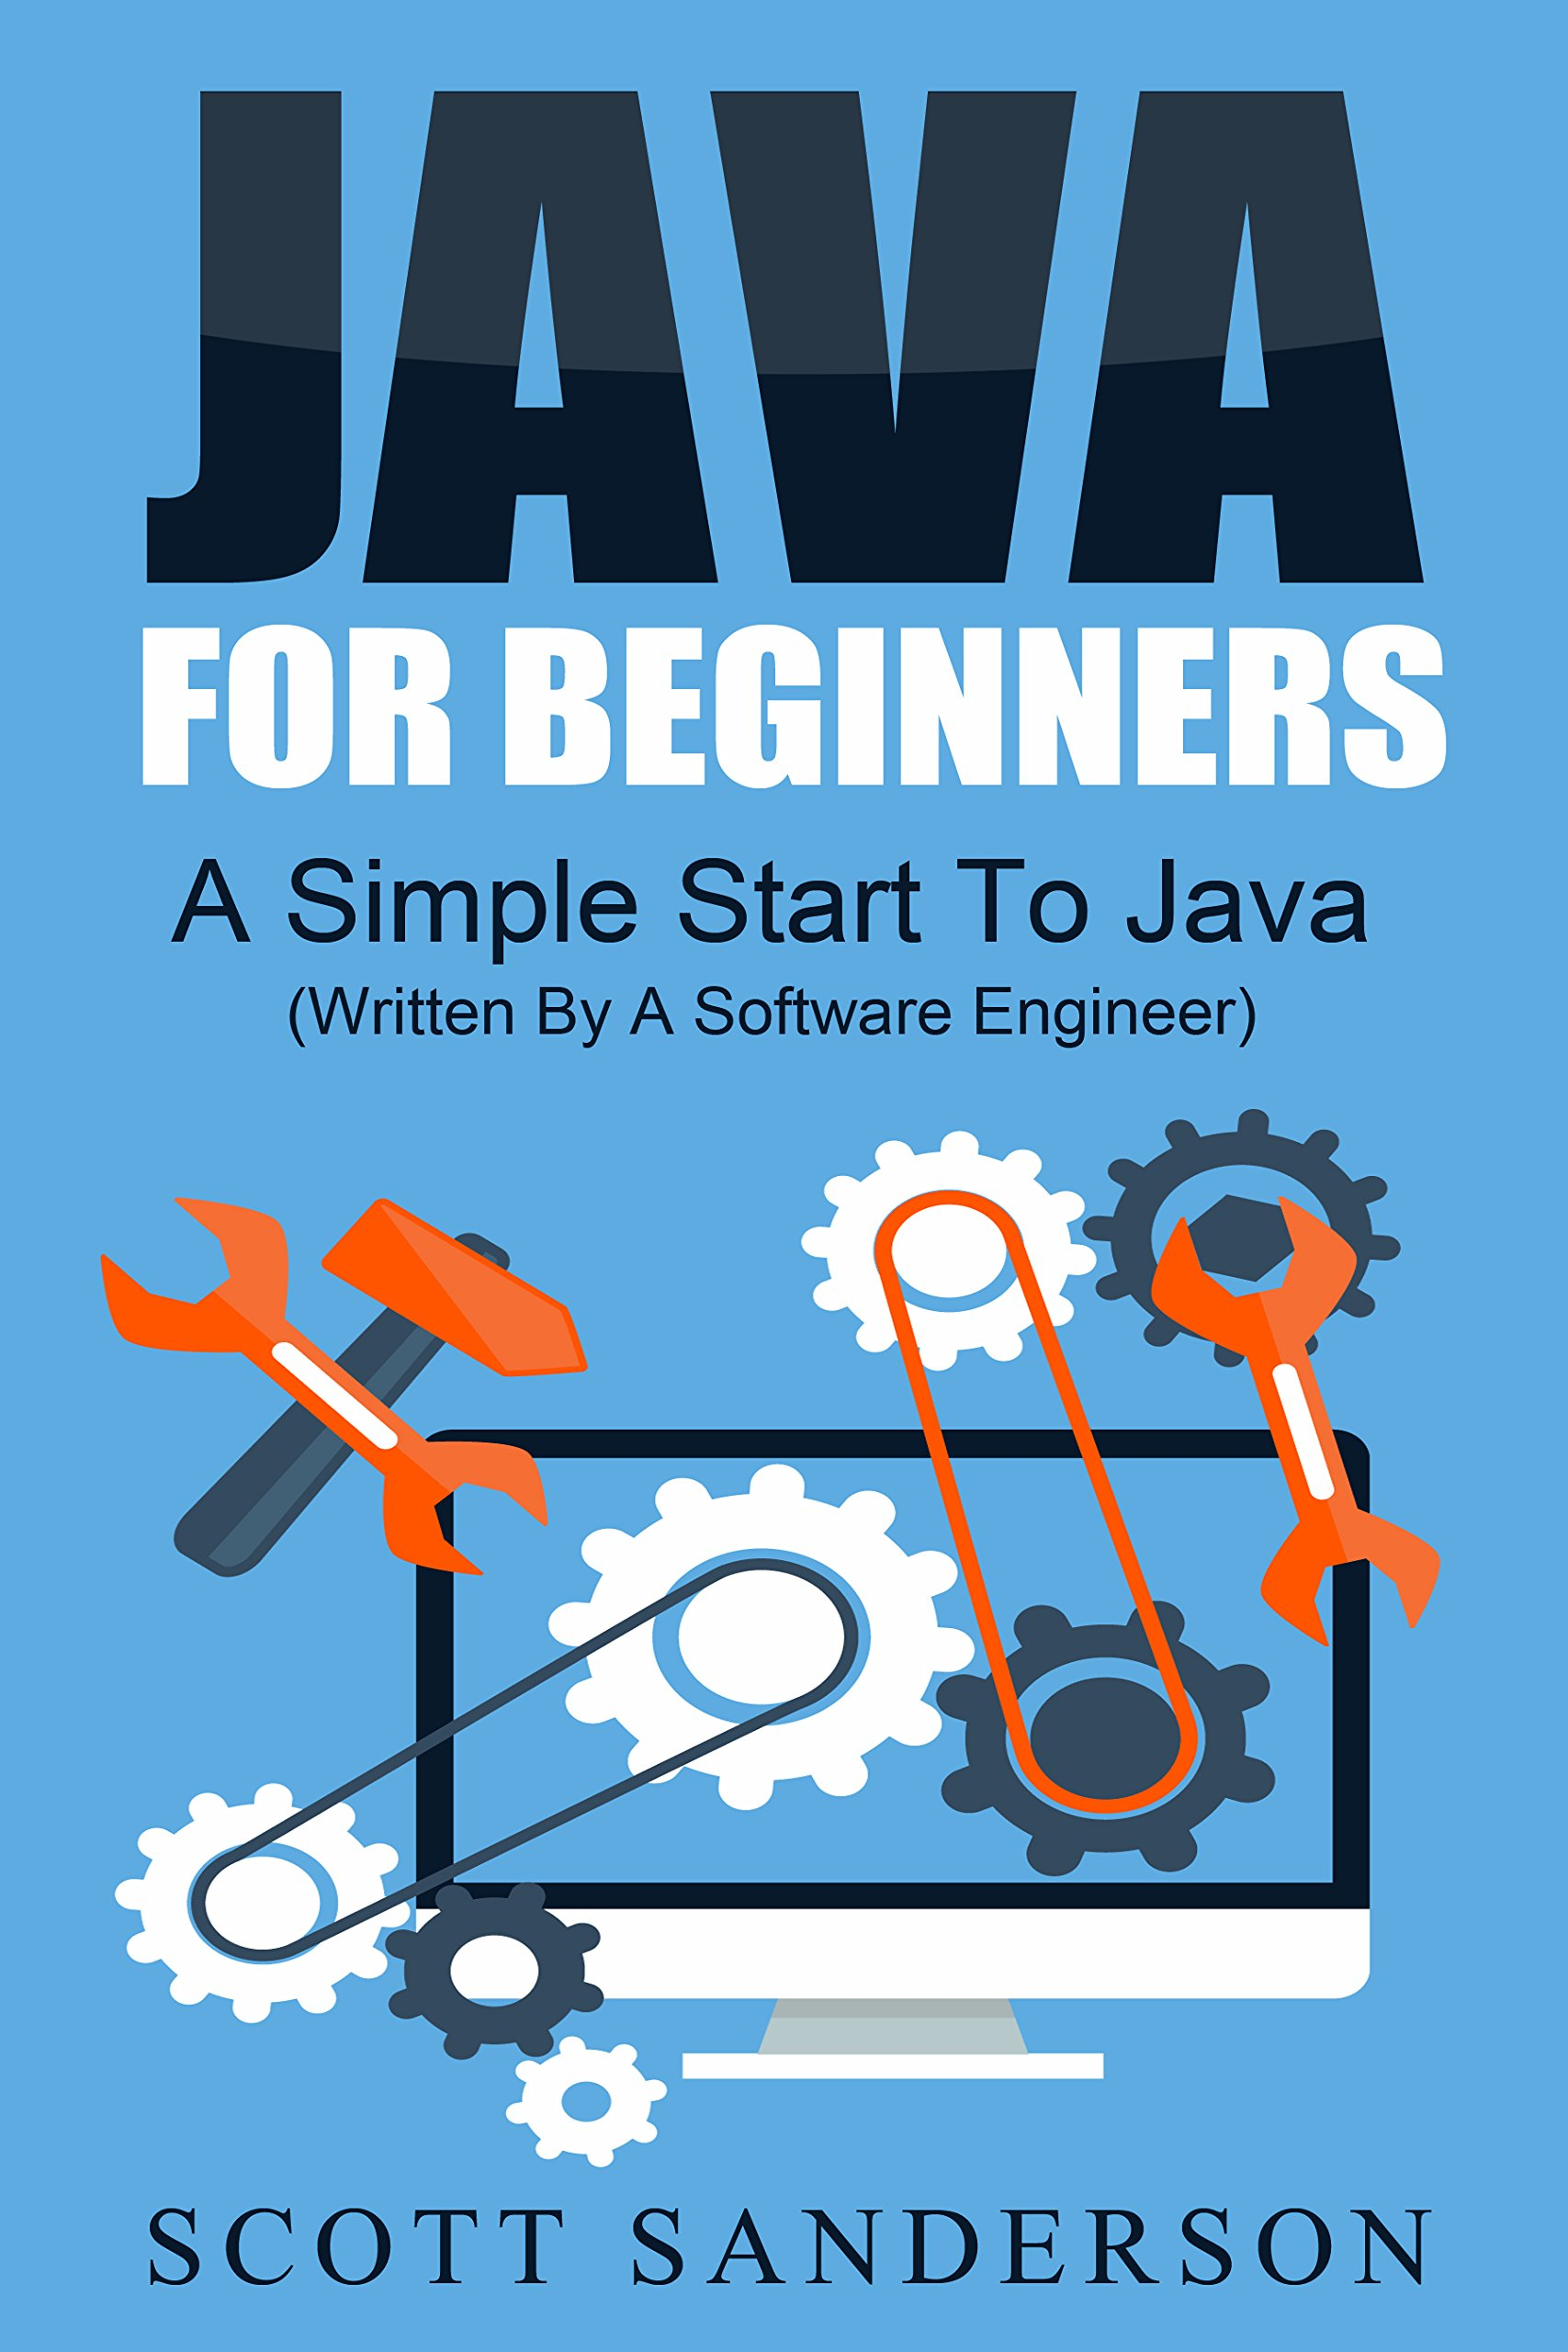 Java For Beginners: A Simple Start To Java (Written By A Software Engineer) (java in one day, java quick reference, java programming simplified) (UPDATED 2020) (Computer Programming)